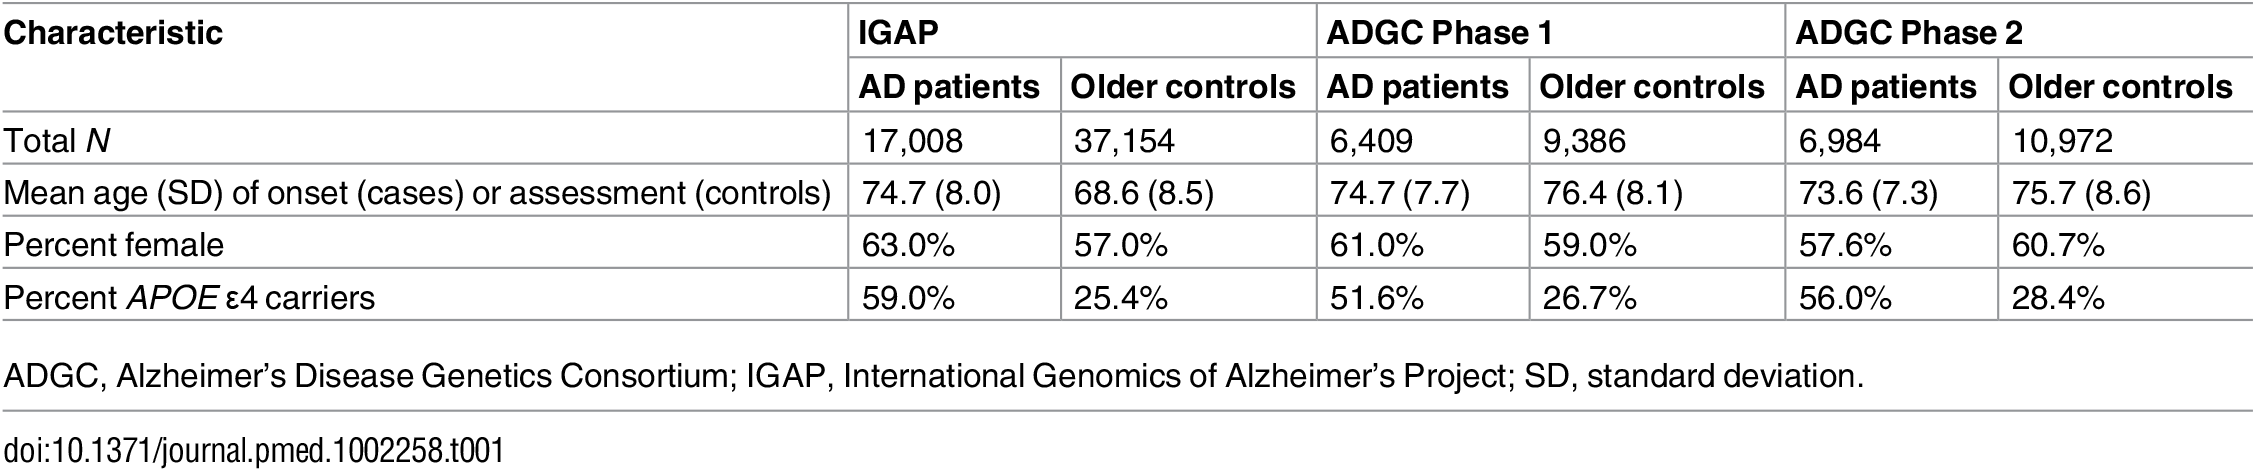 Demographic data for AD patients and older controls.